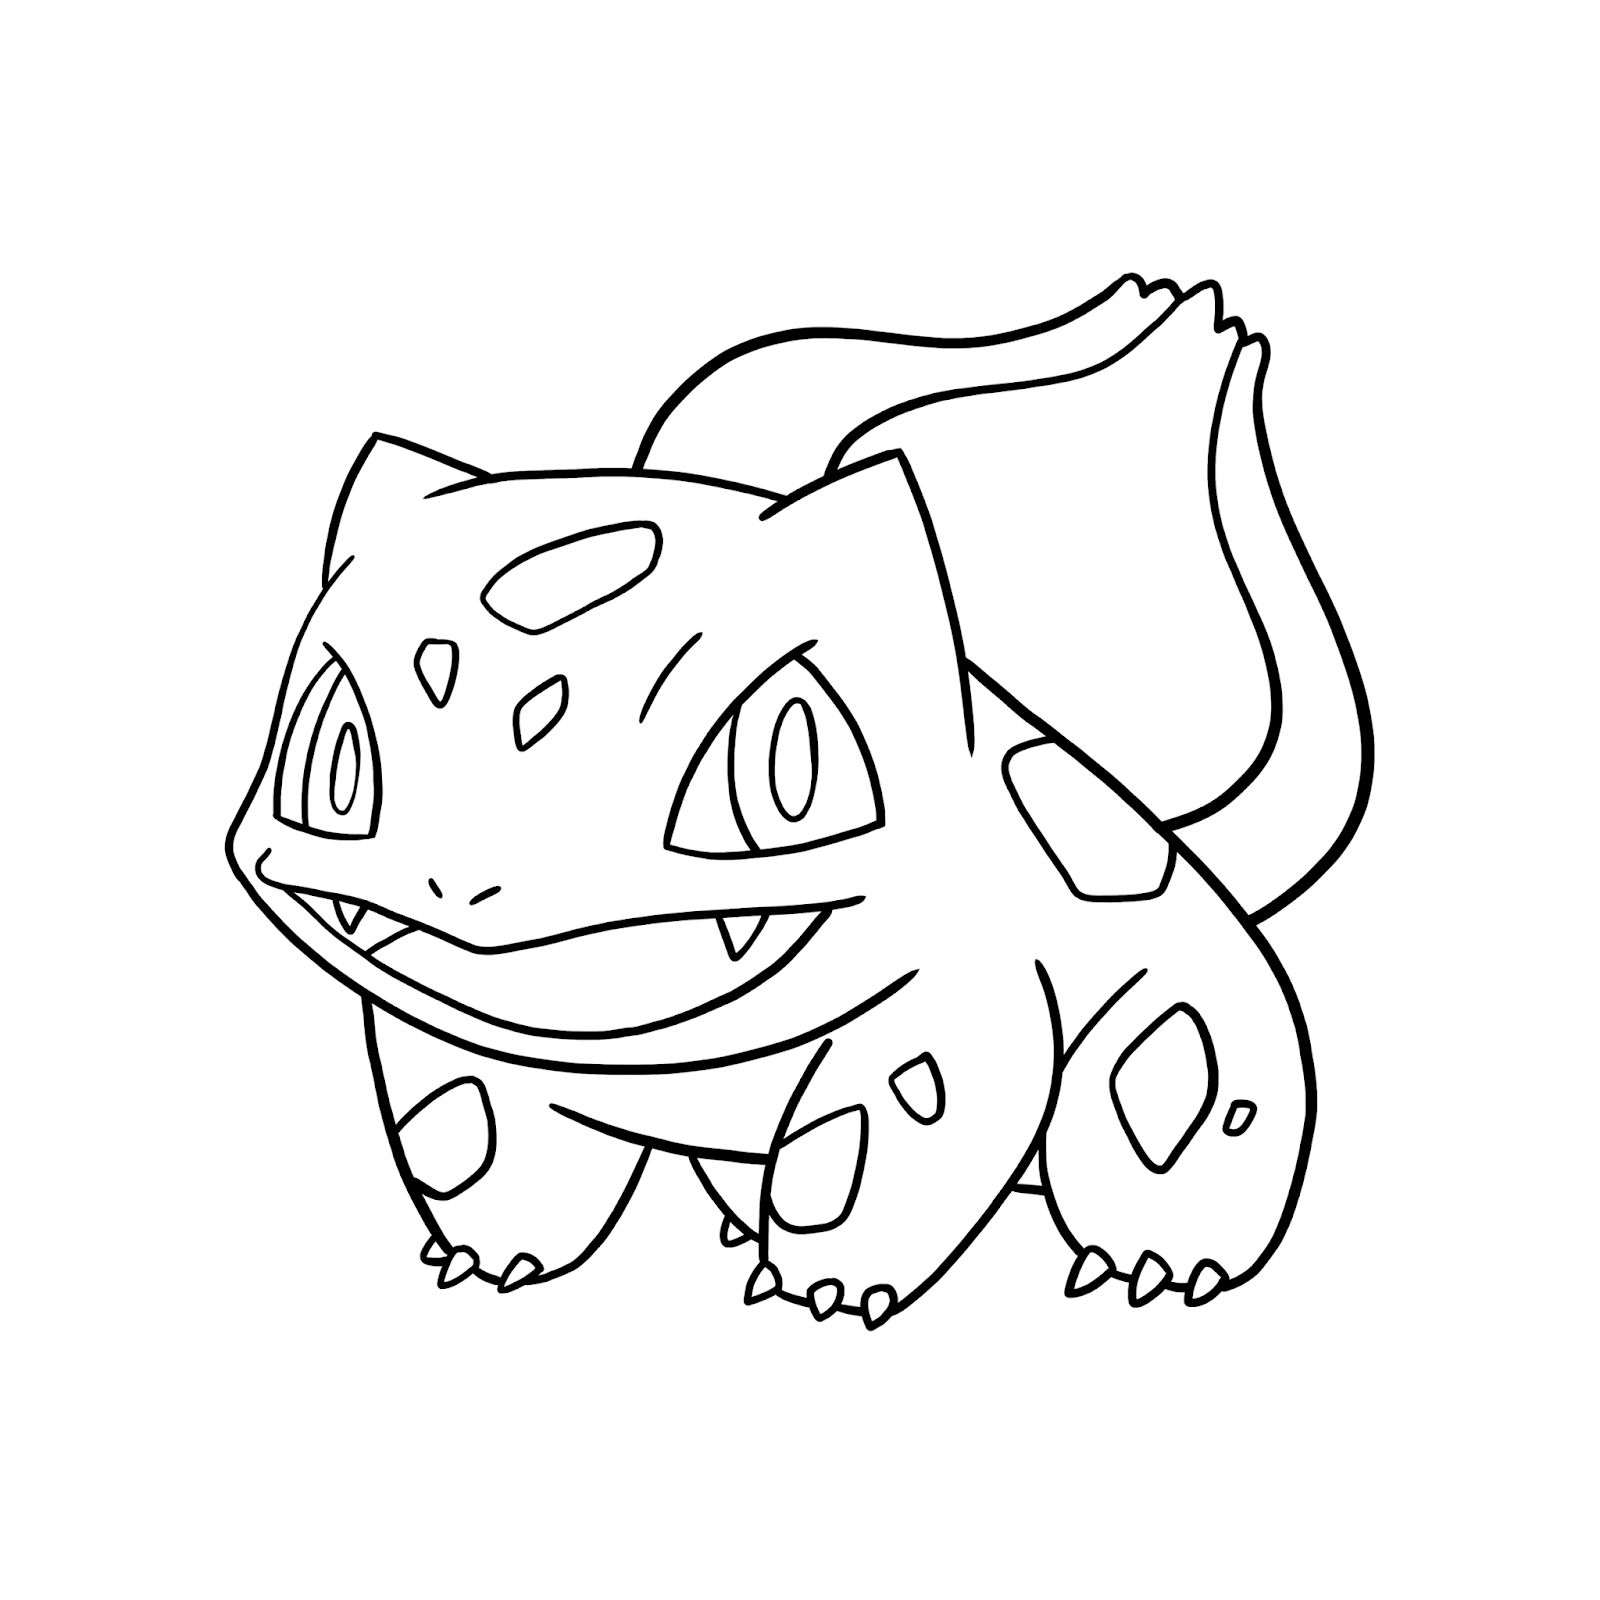 38 Various Coloring Page Pokemon With Images Pokemon Coloring